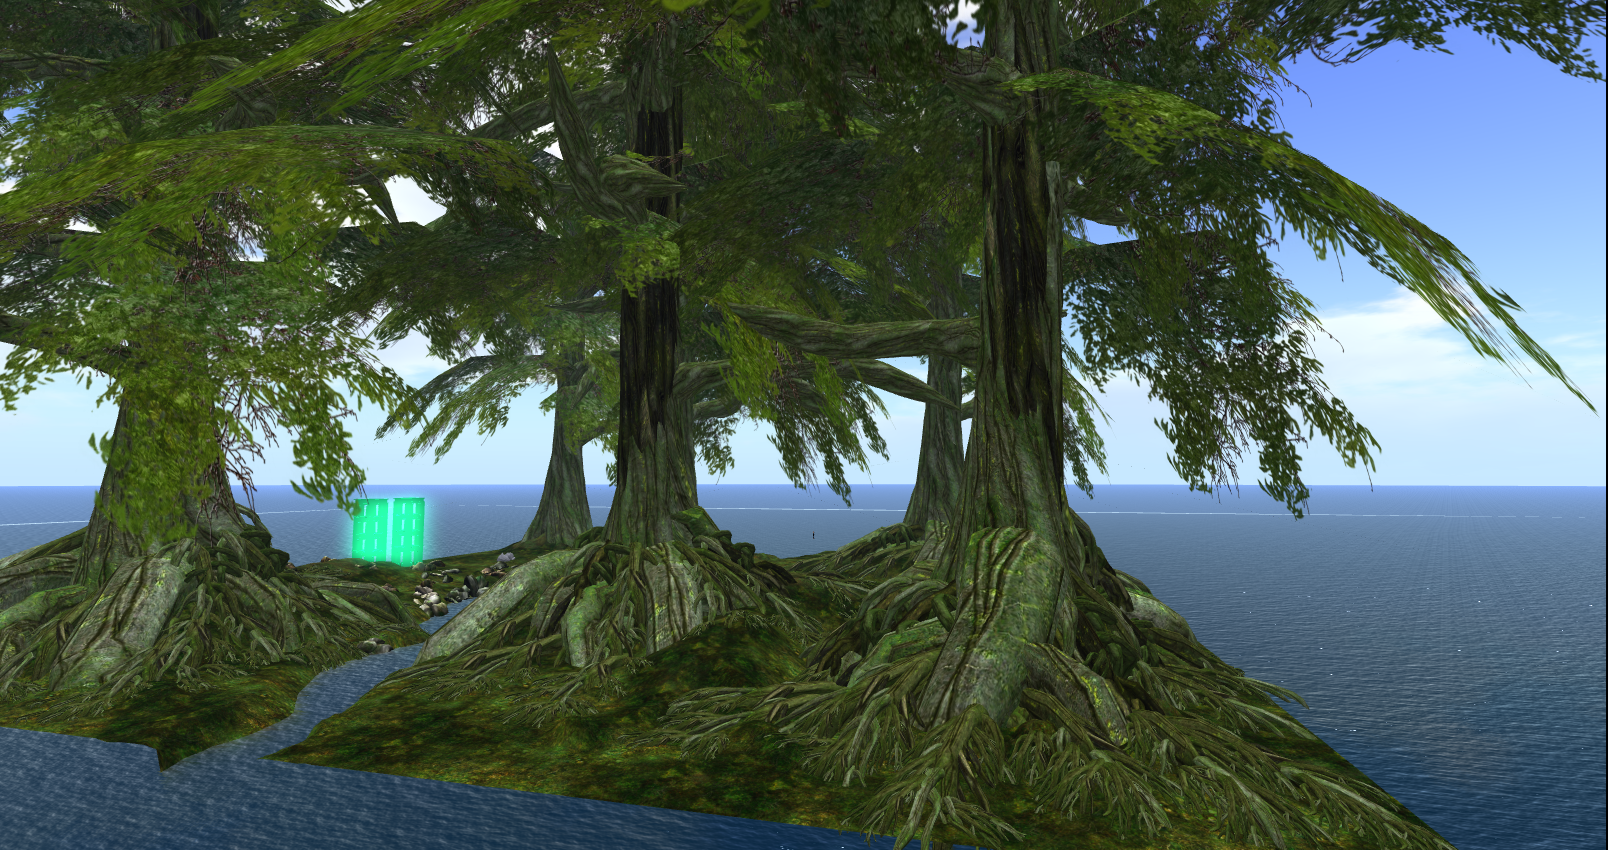 Lothlorien on Chakryn Forest, a work in progress by Andrek Lowell